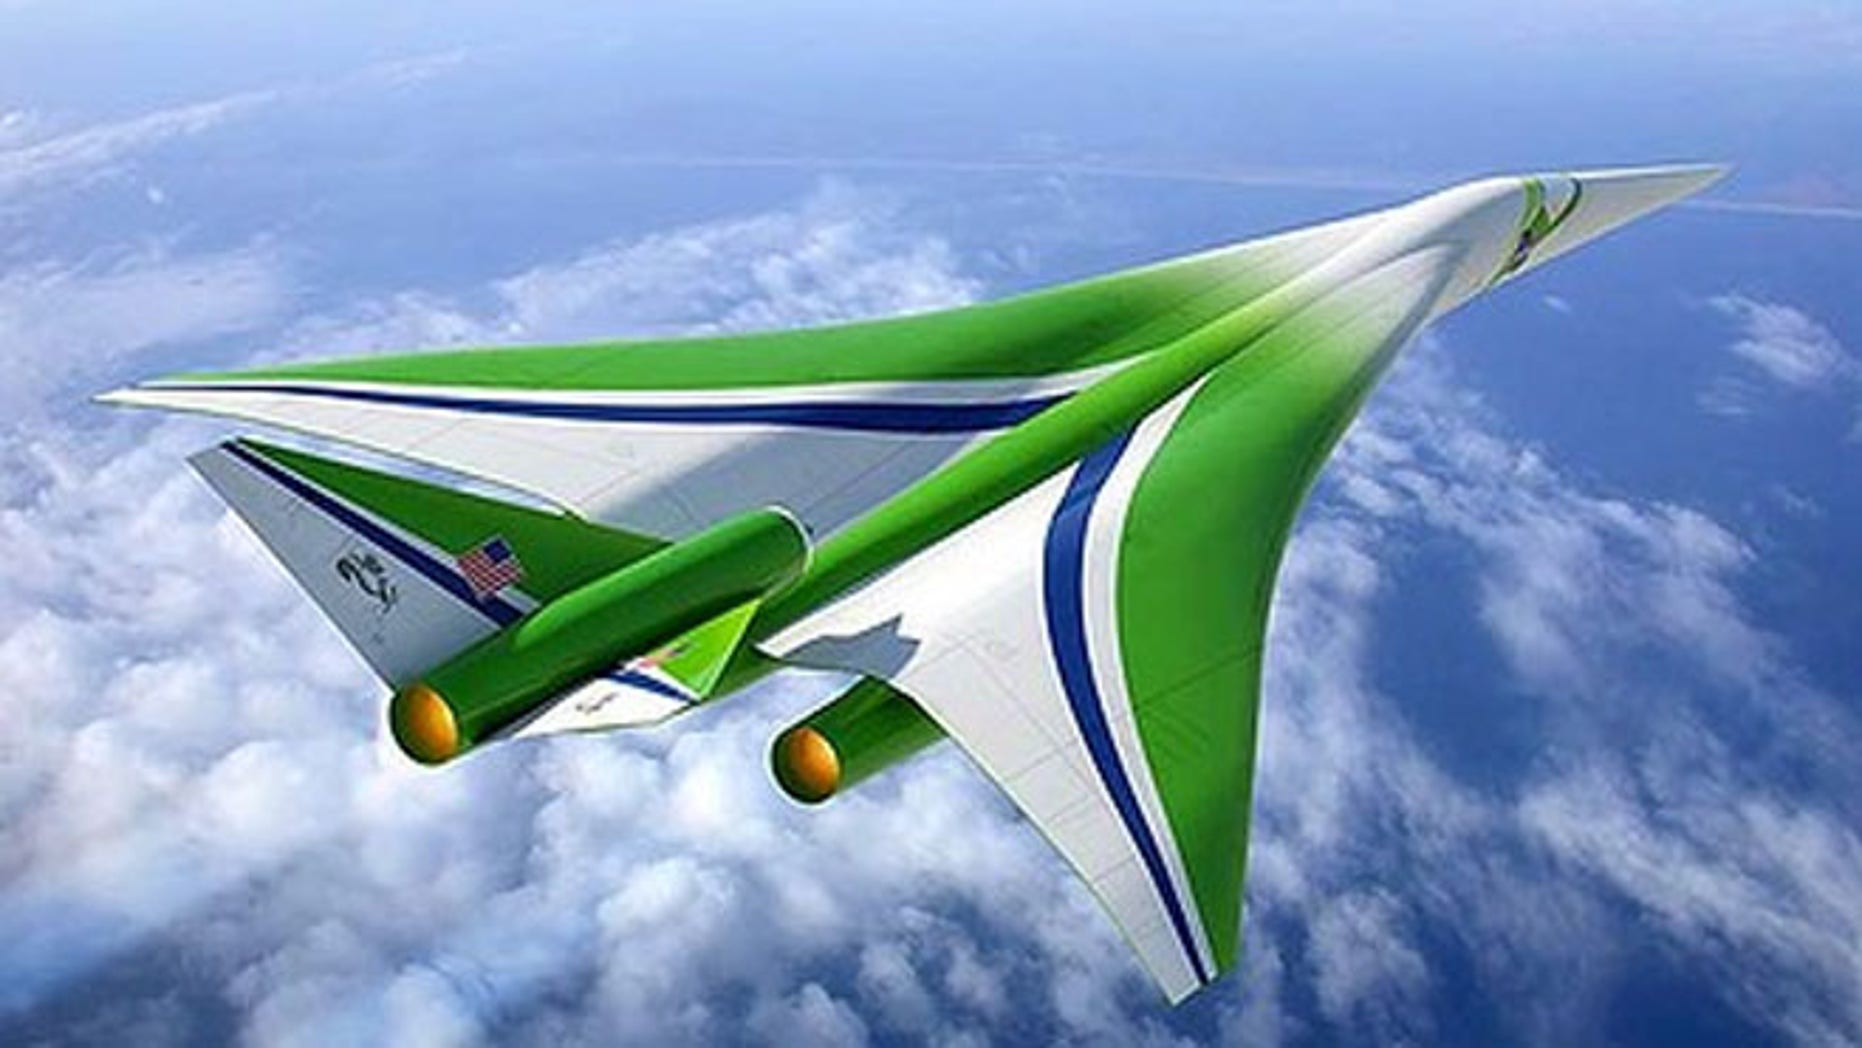 The designs for the 'Son of Concorde' will be sketched out at next month's Farnborough air show in London.